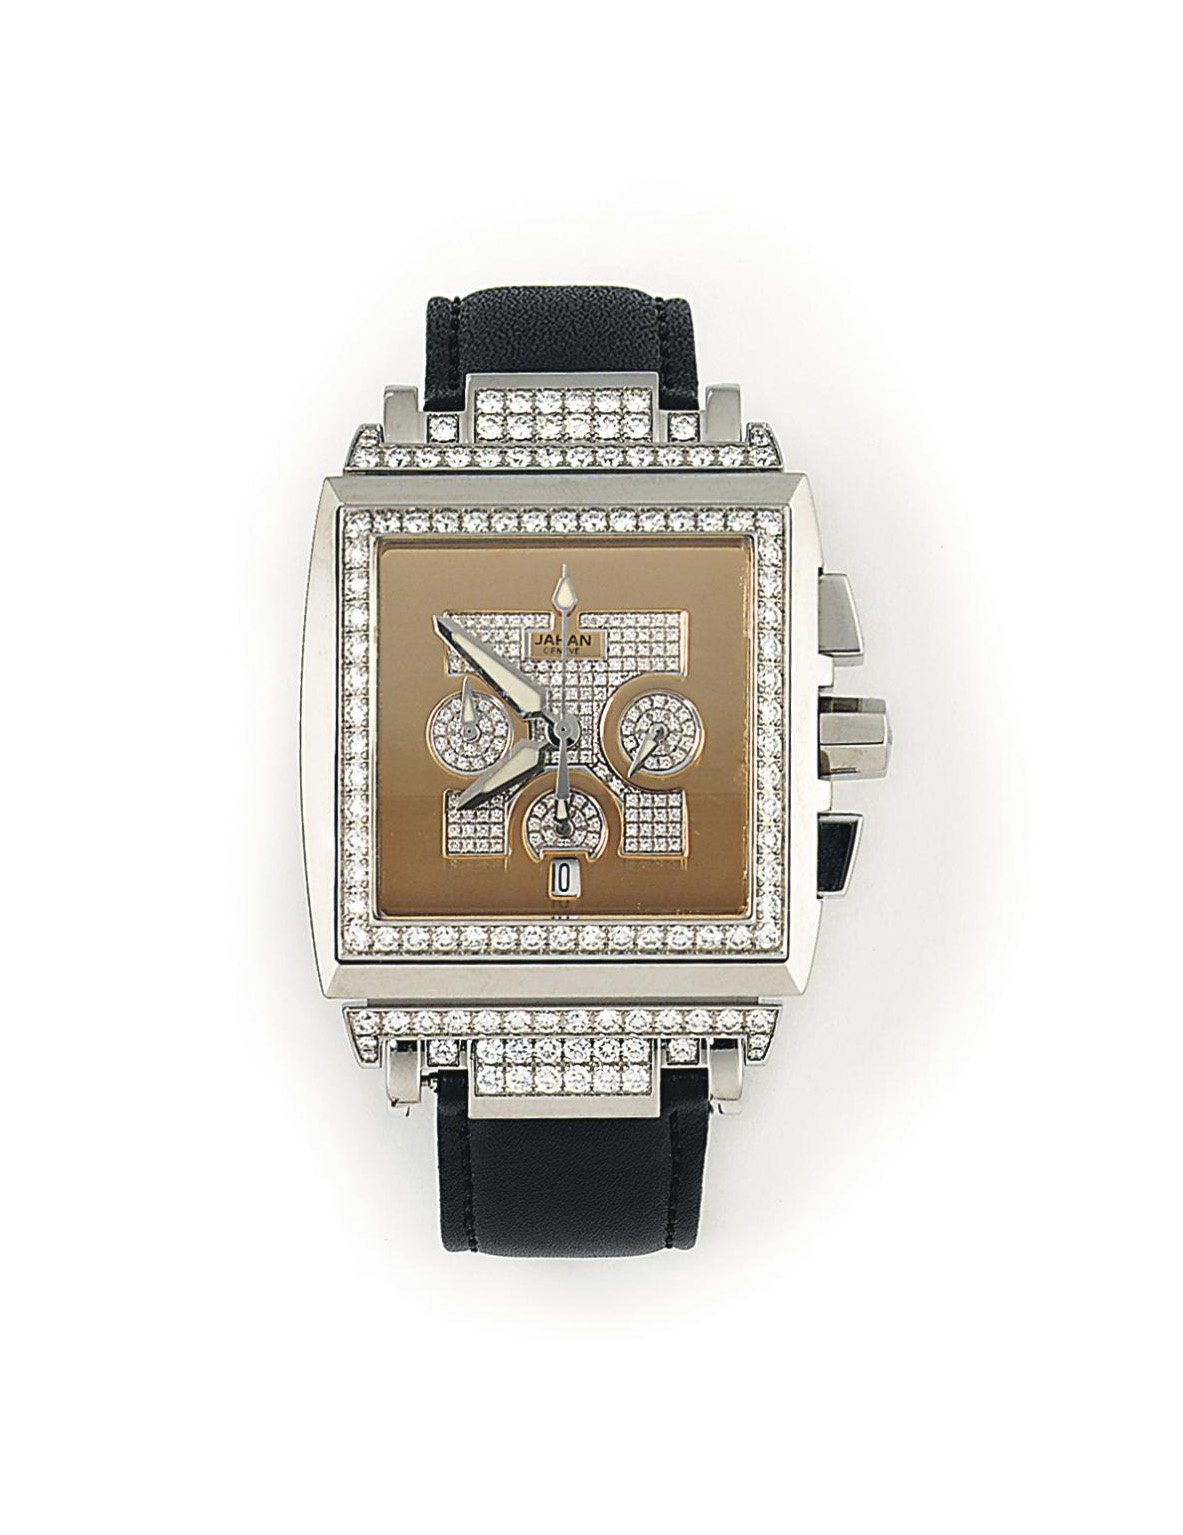 A STAINLESS STEEL AND DIAMOND